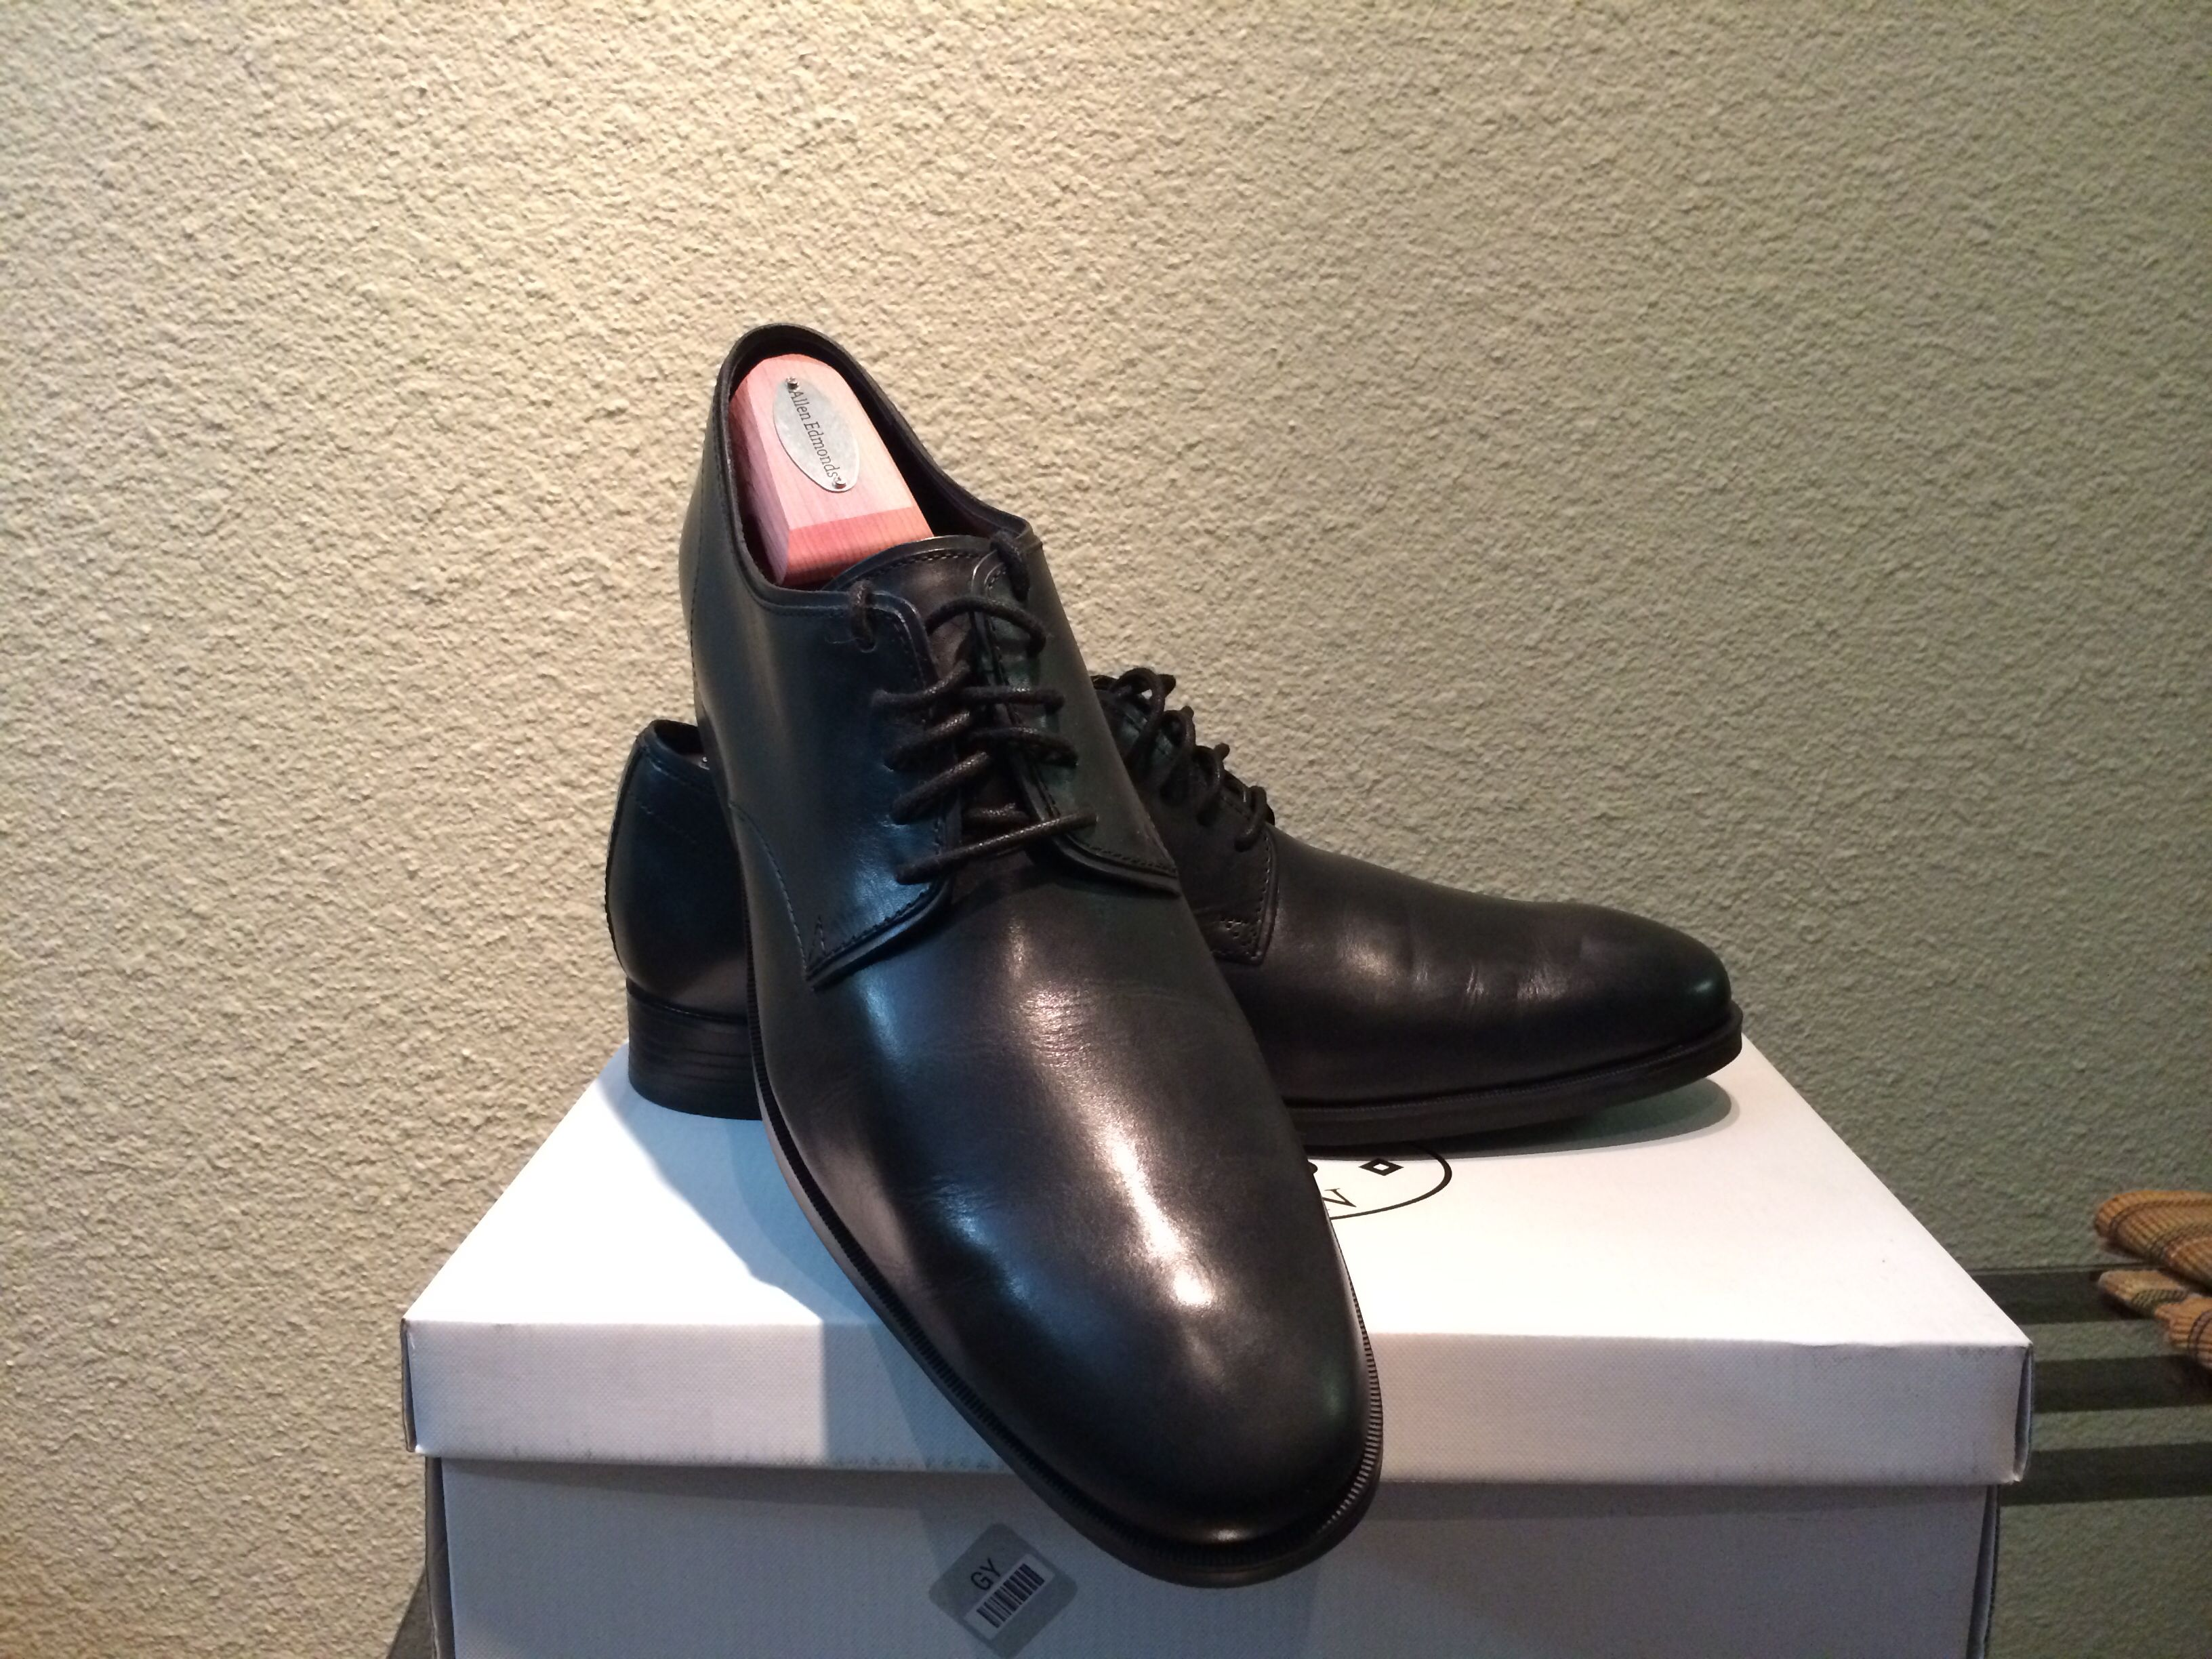 Current collection - cole haan Copley derby. Bigger fan of these on than not on.